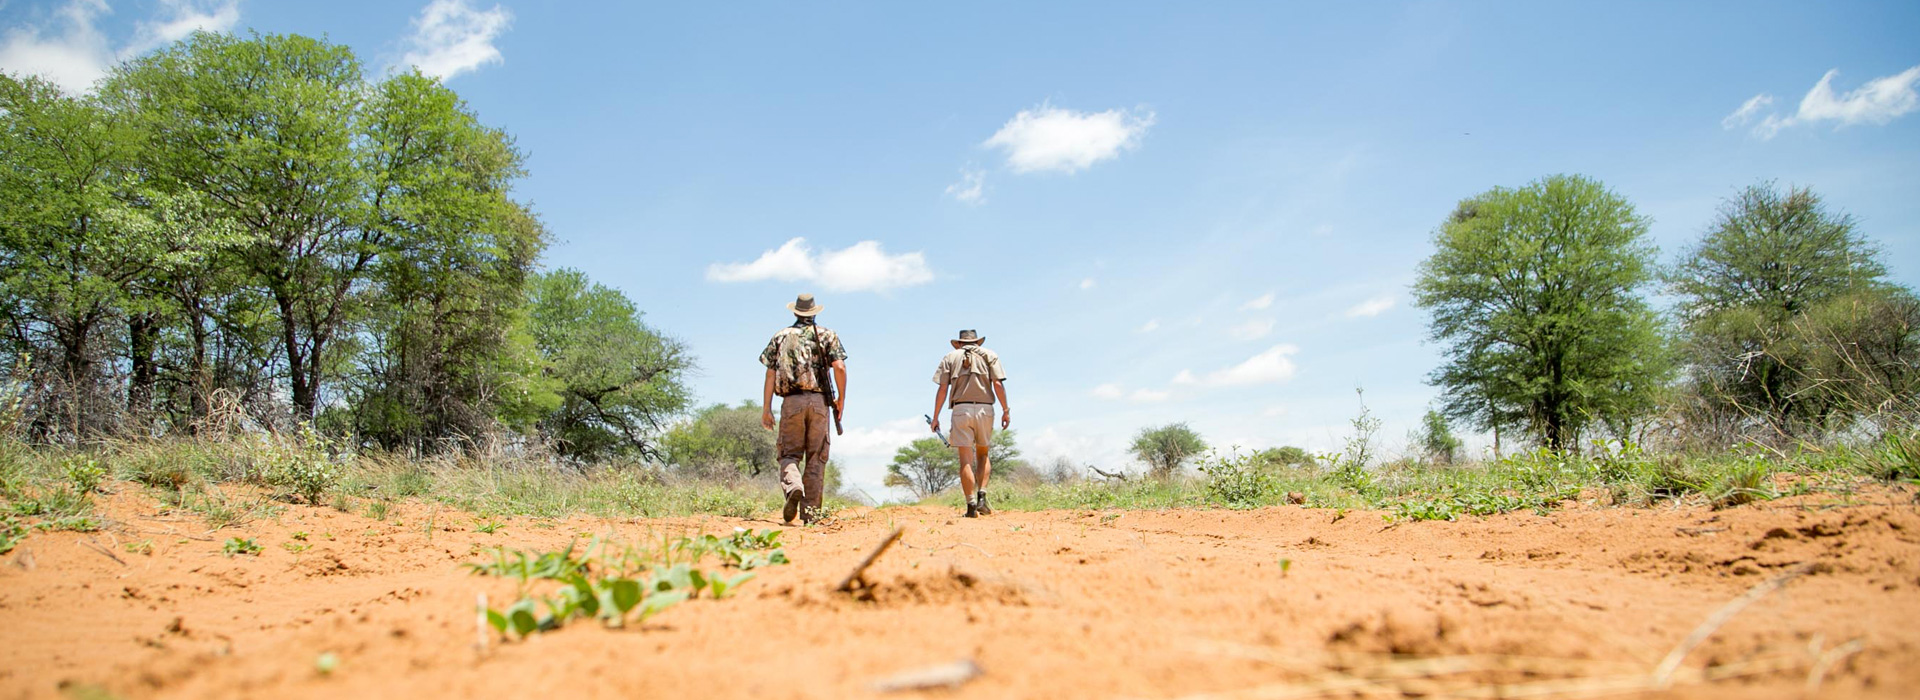 why-cruiser-safaris-hunting